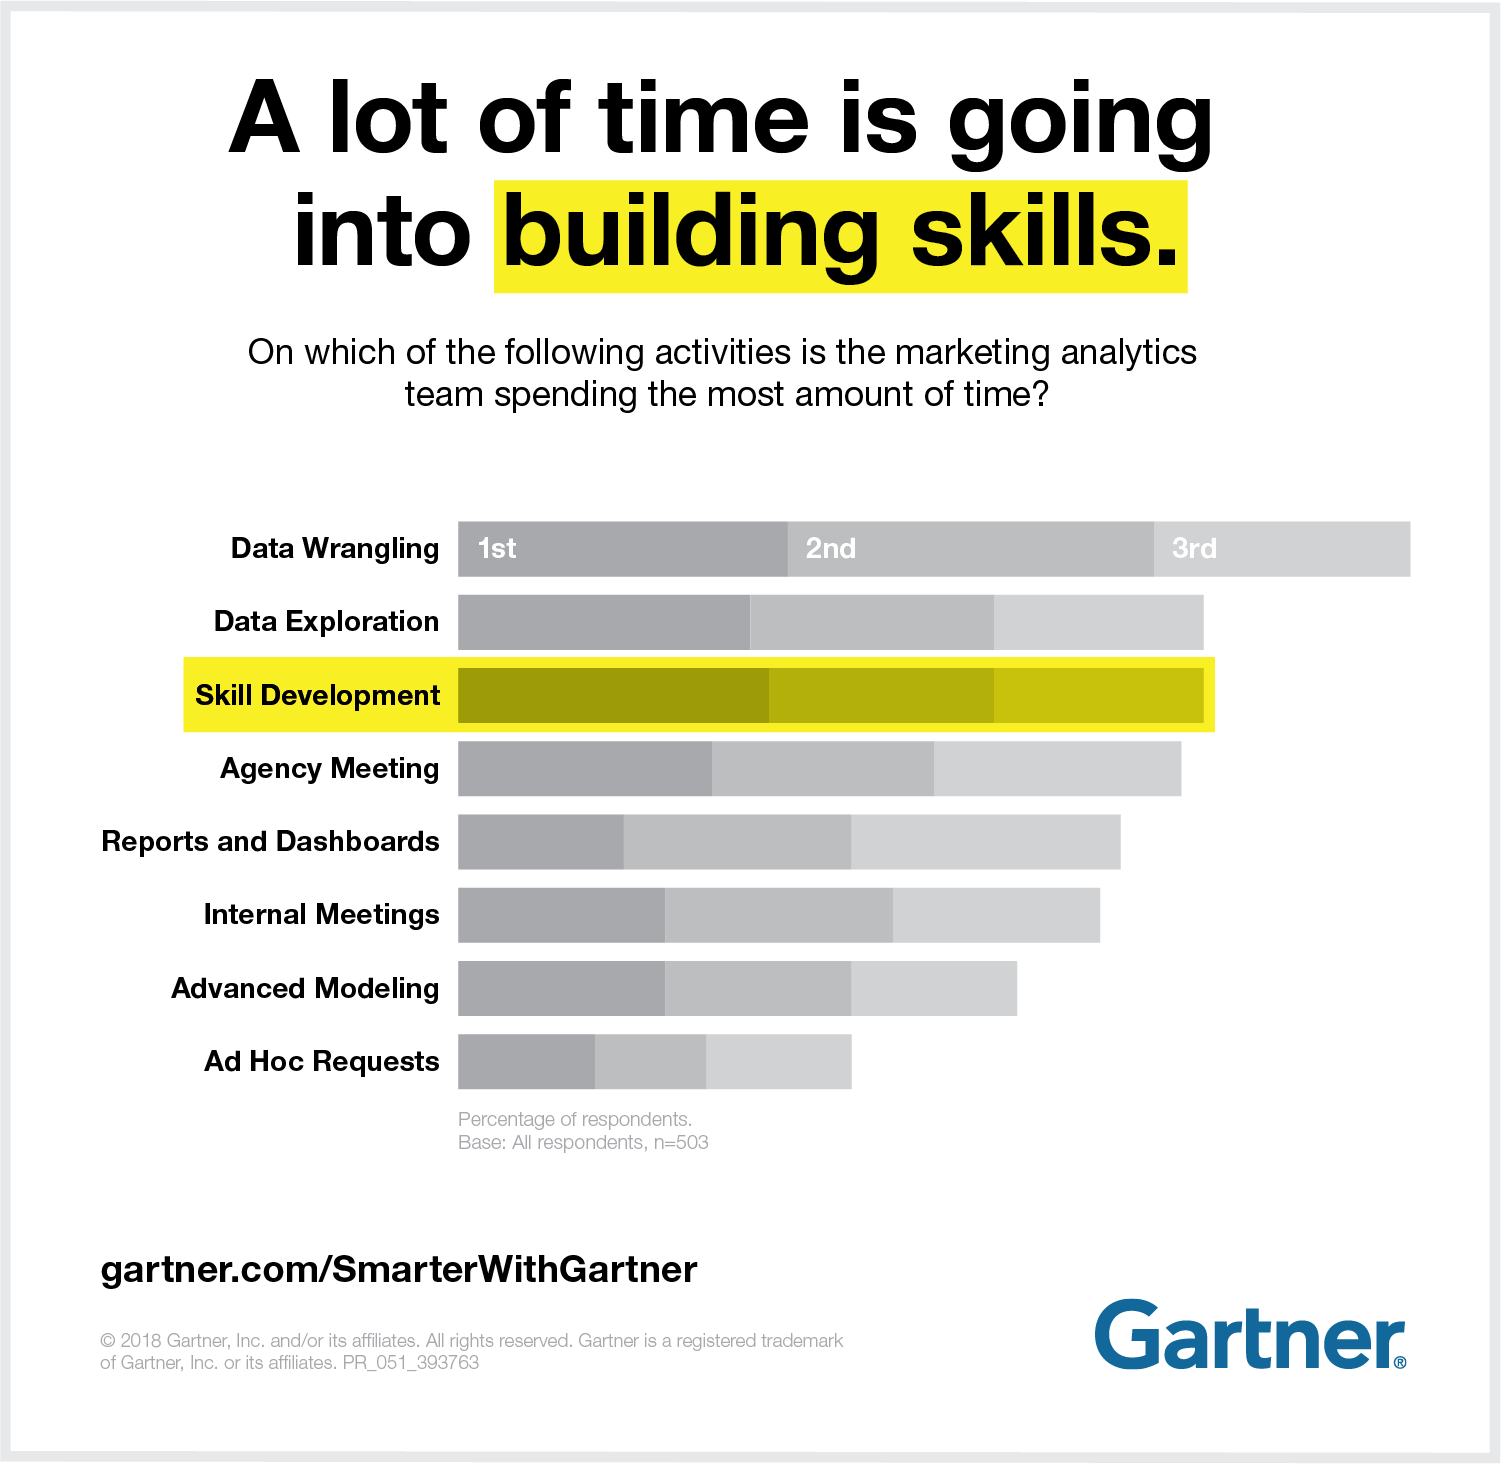 A lot of time is going into building skills.